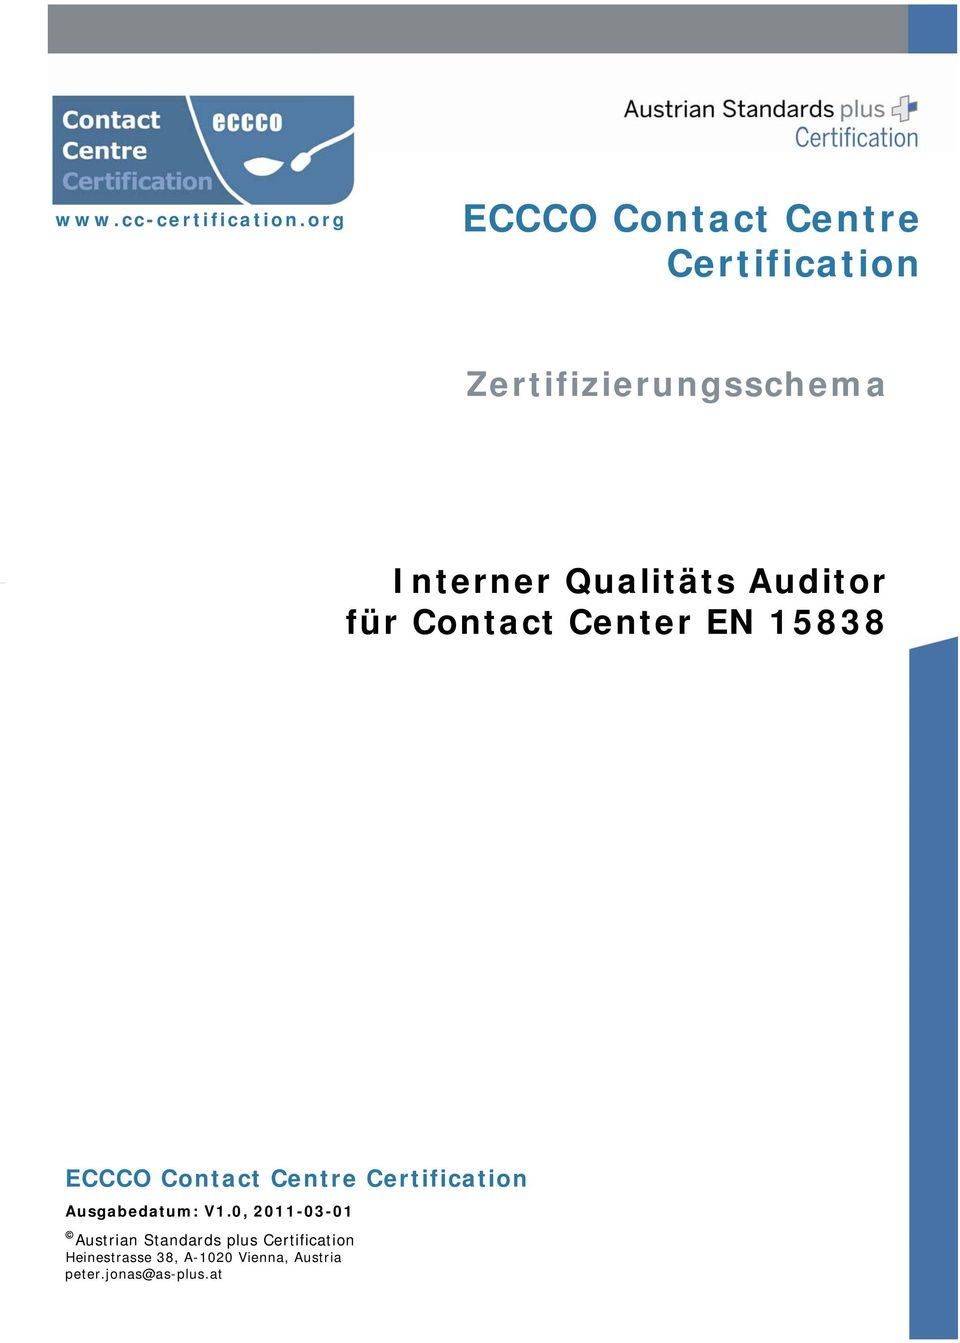 Qualitäts Auditor für Contact Center EN 15838 ECCCO Contact Centre